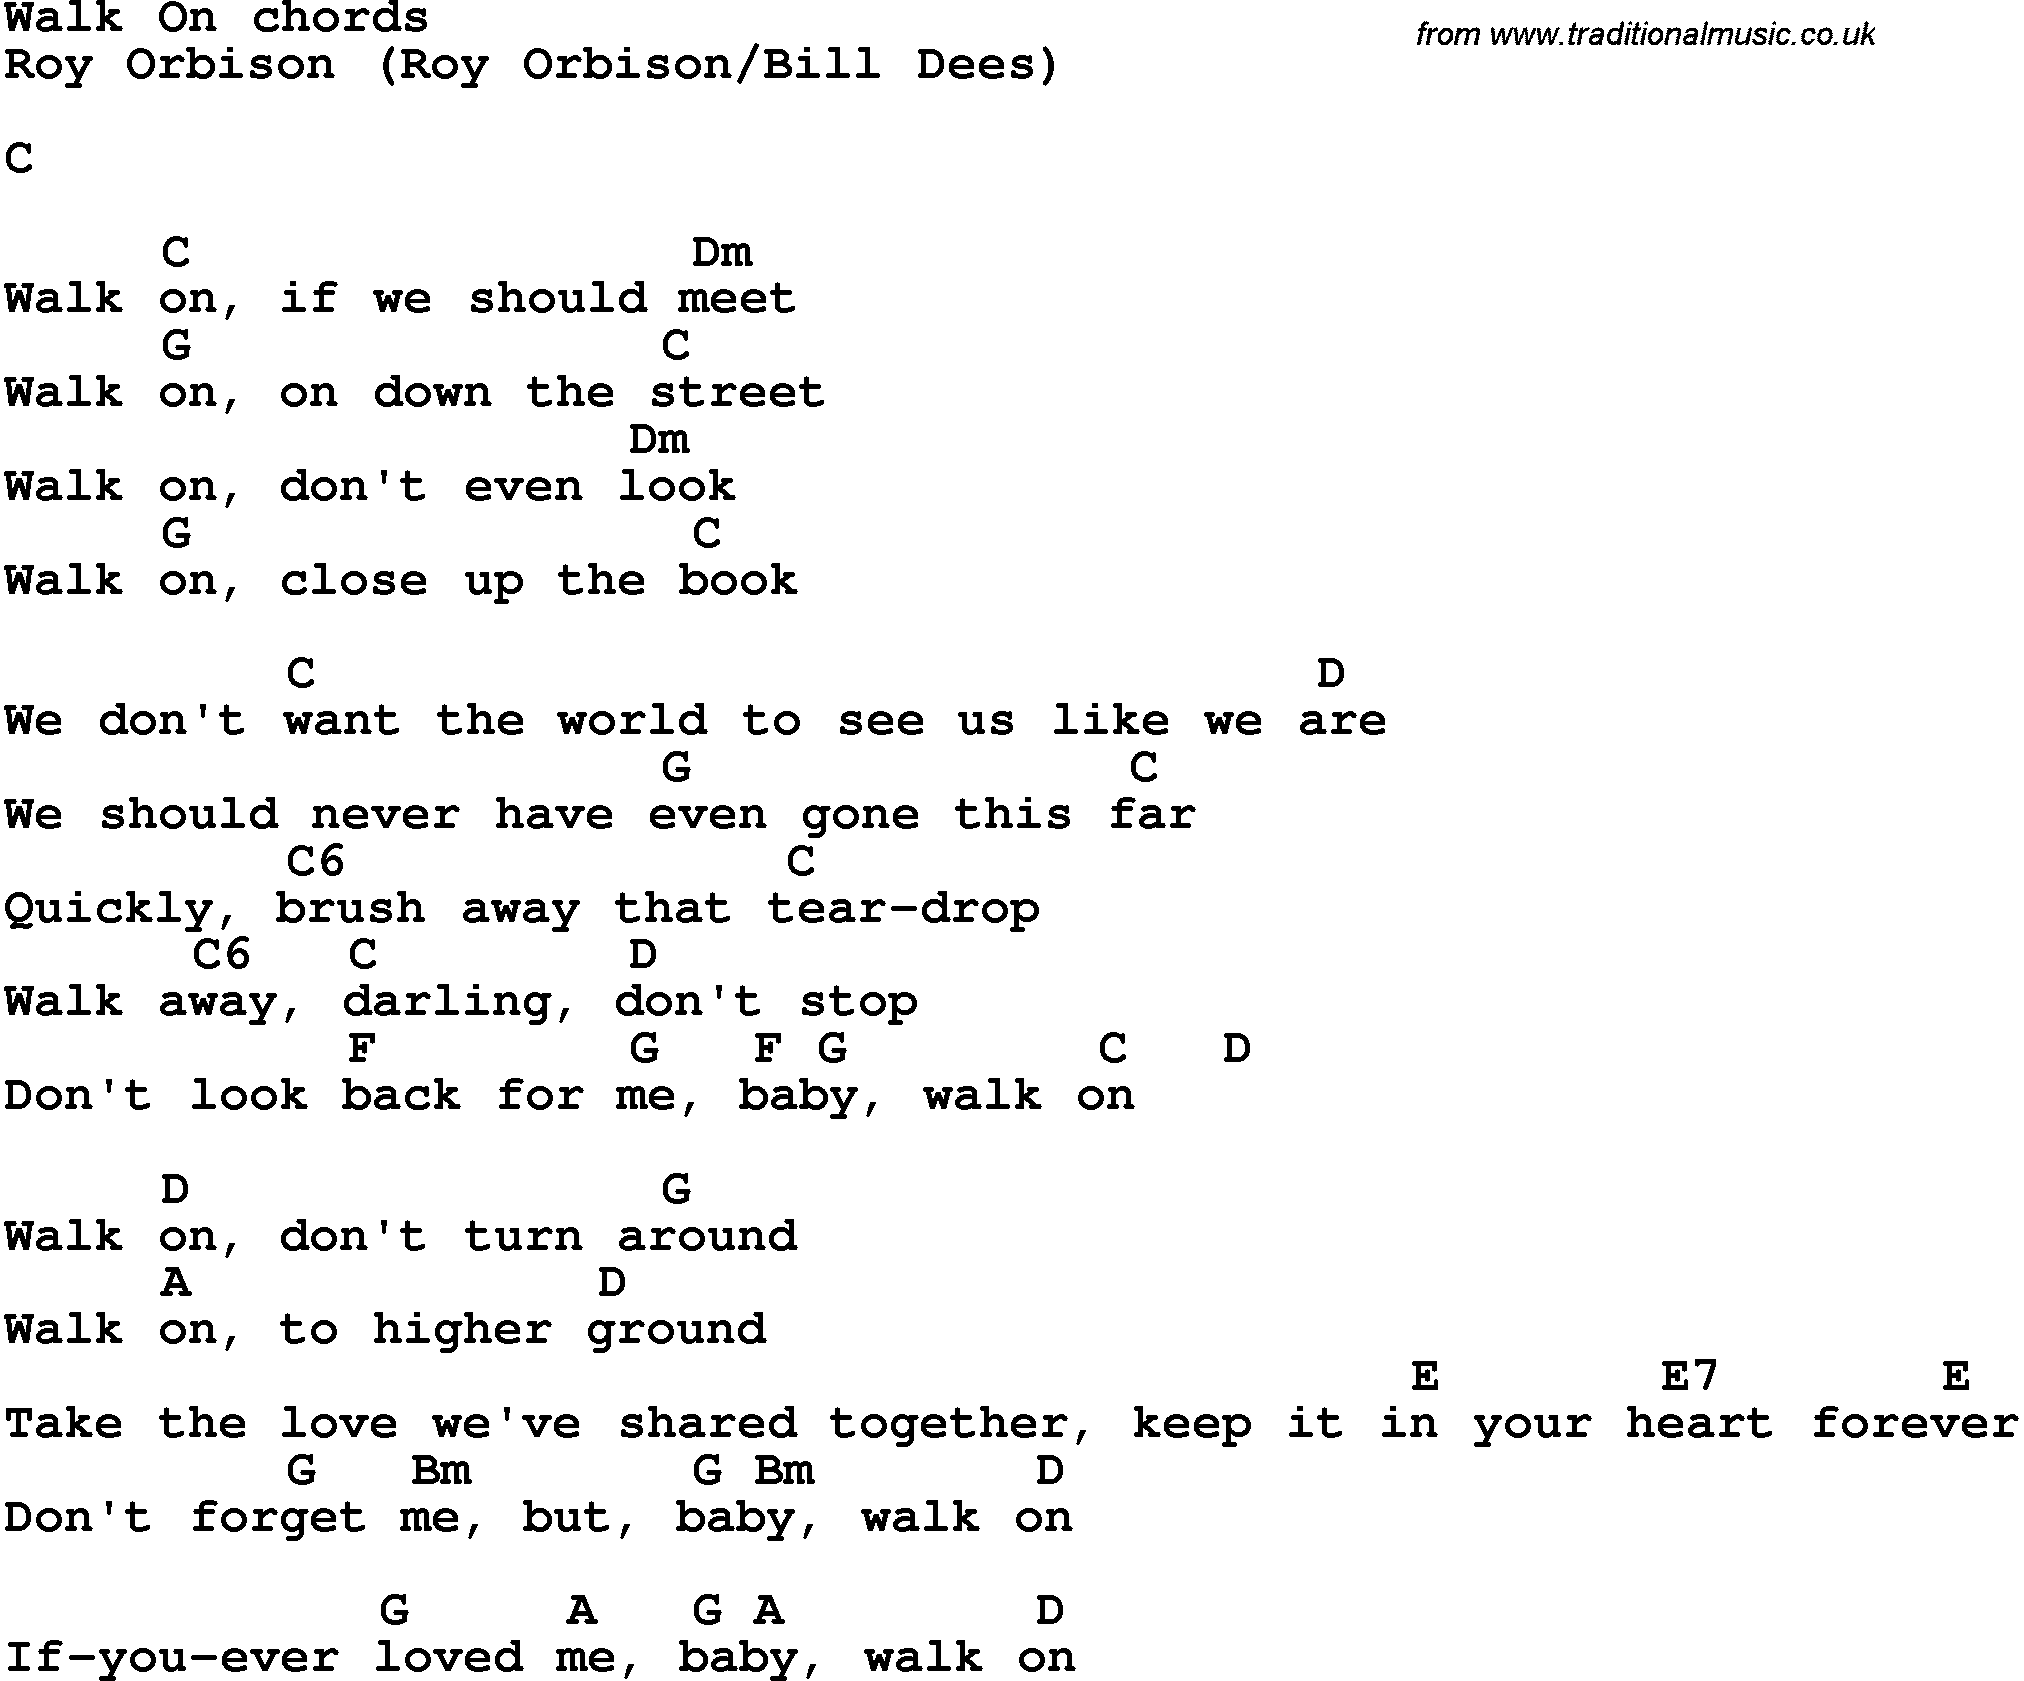 Song Lyrics With Guitar Chords For Walk On